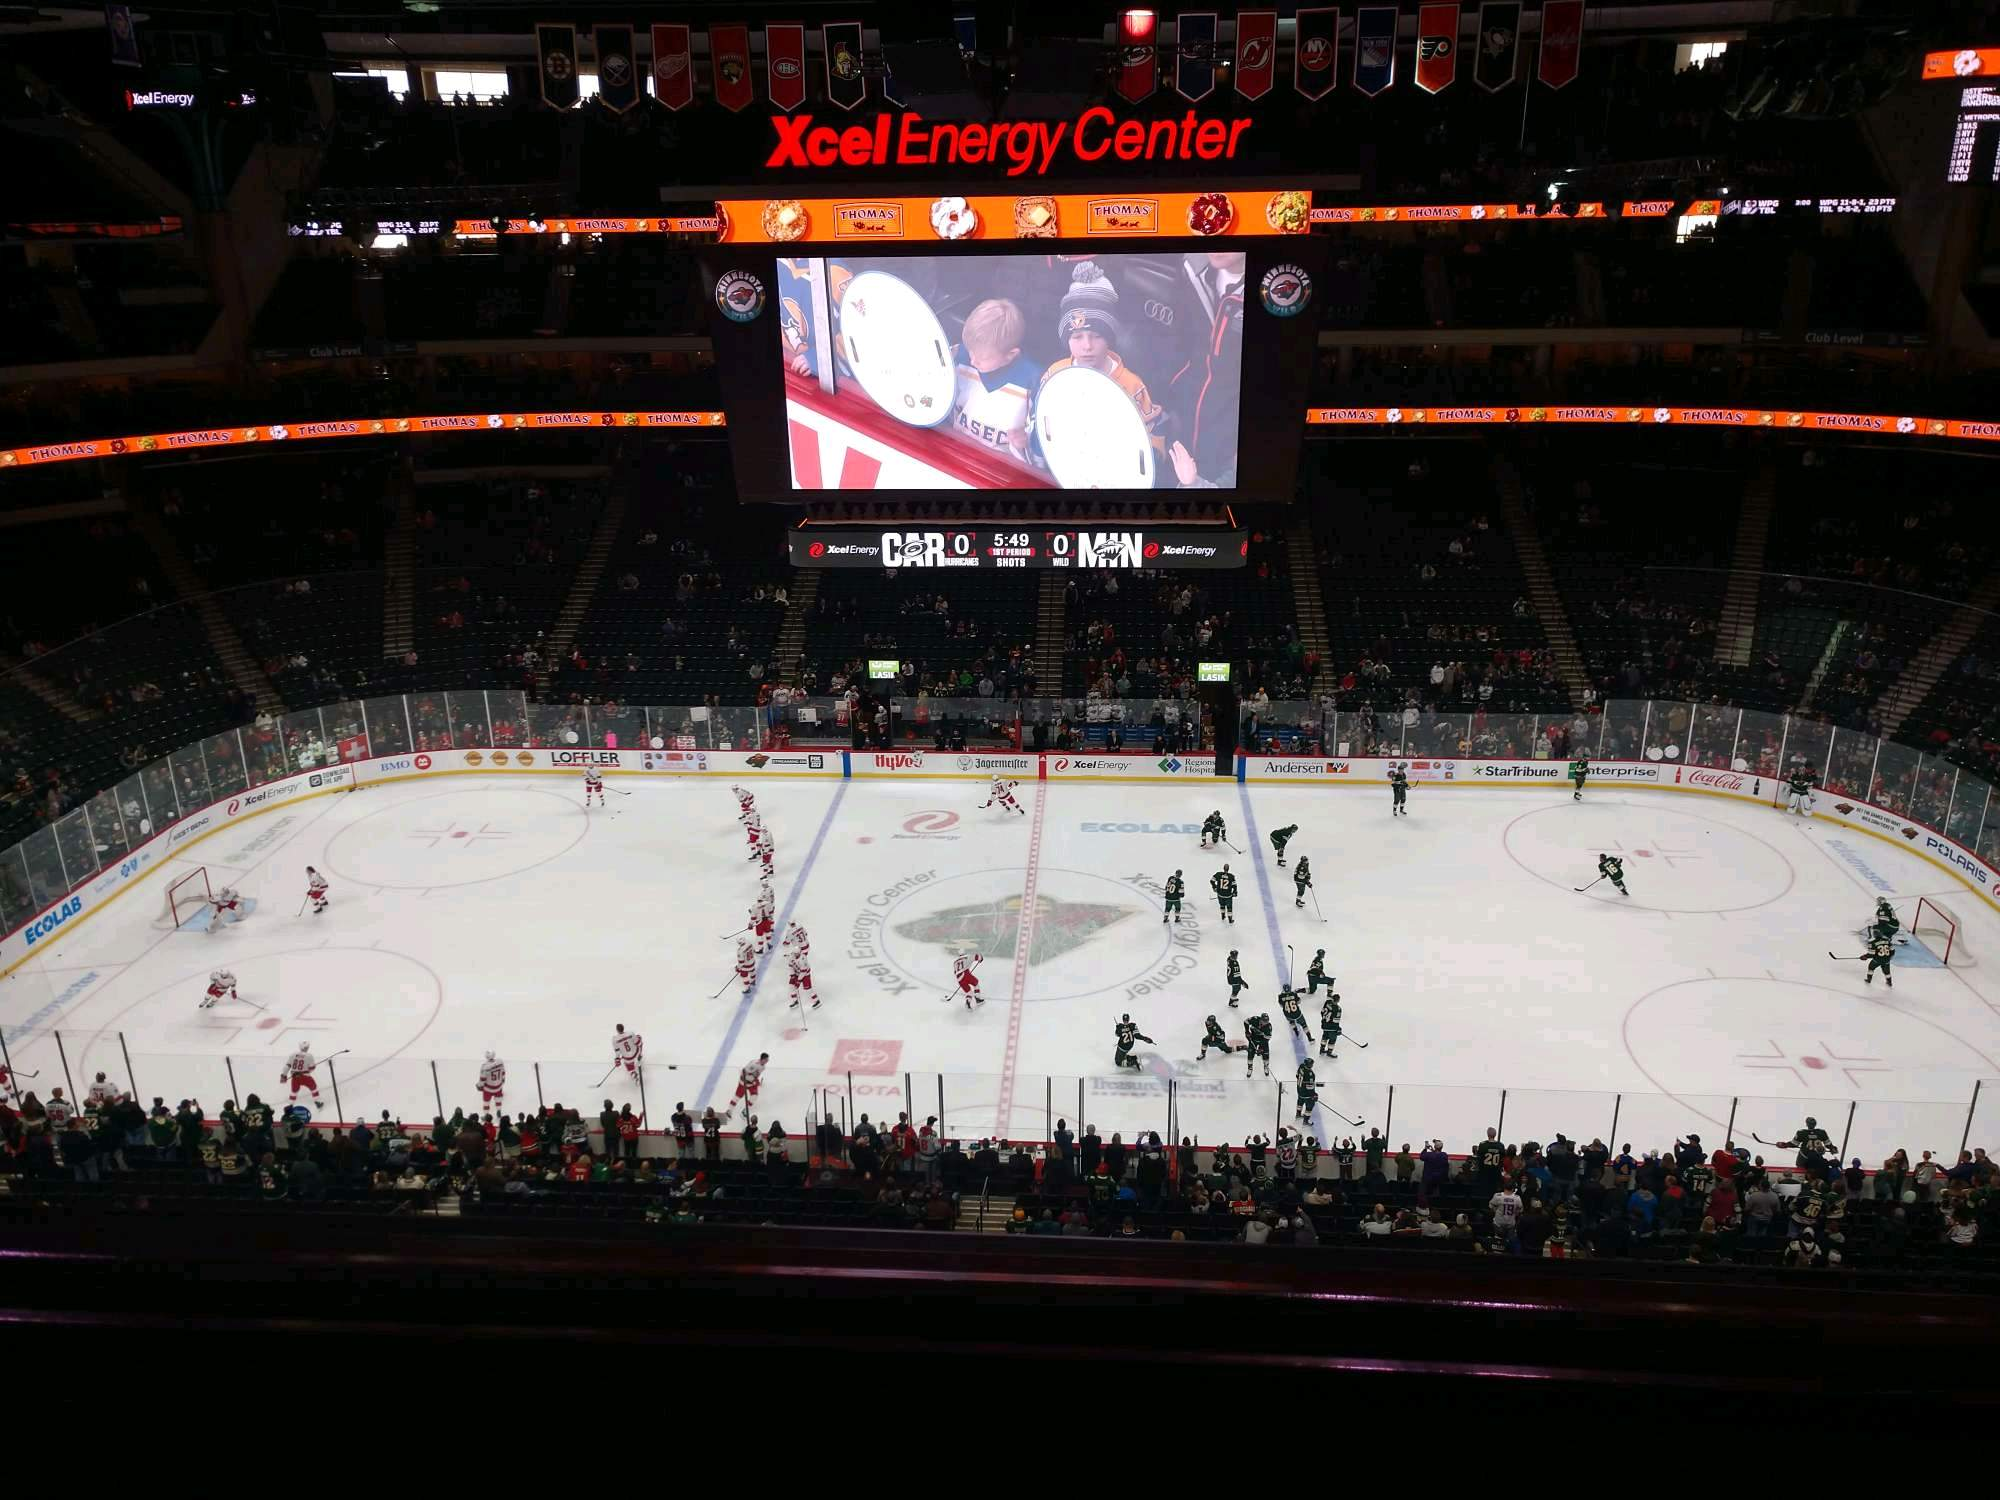 Xcel Energy Center Section 204 Row 2 Seat 6